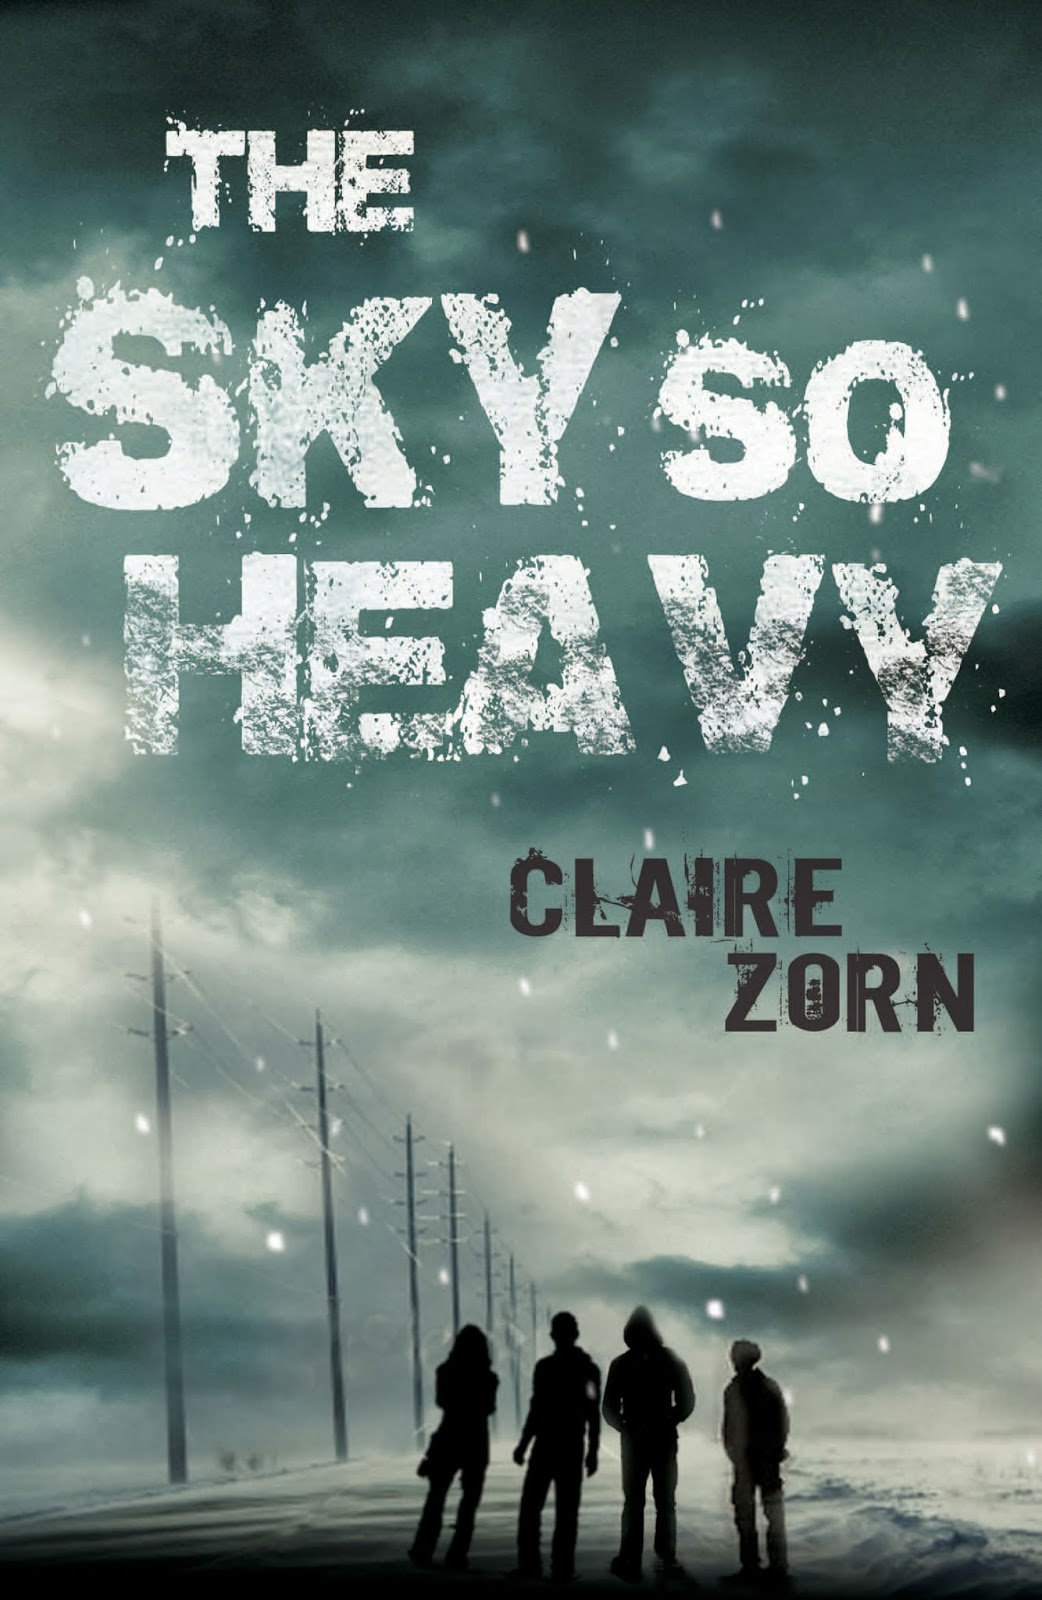 http://www.thetalescompendium.com/2014/02/the-sky-so-heavy-by-claire-zorn.html